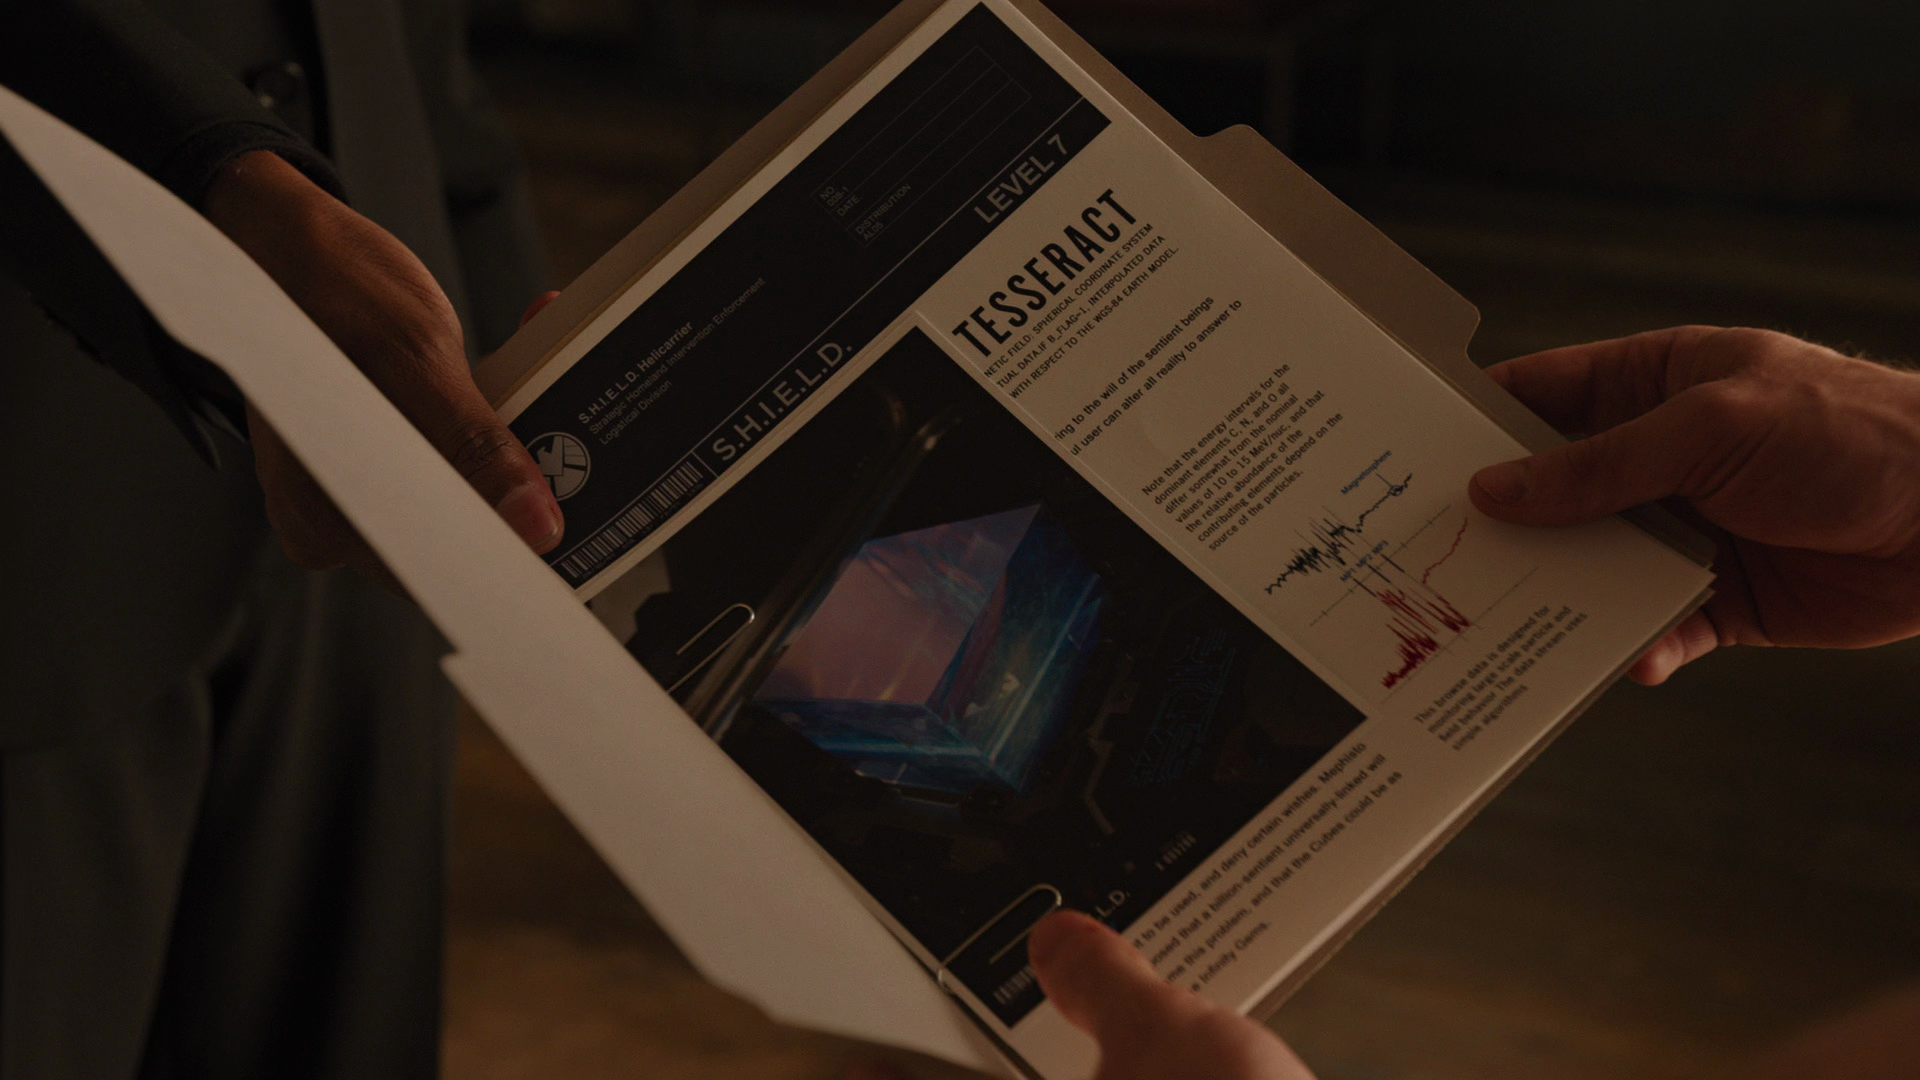 https://vignette.wikia.nocookie.net/marvelcinematicuniverse/images/8/82/Tesseract_%28S.H.I.E.L.D._File%29.png/revision/latest?cb=20180522140226